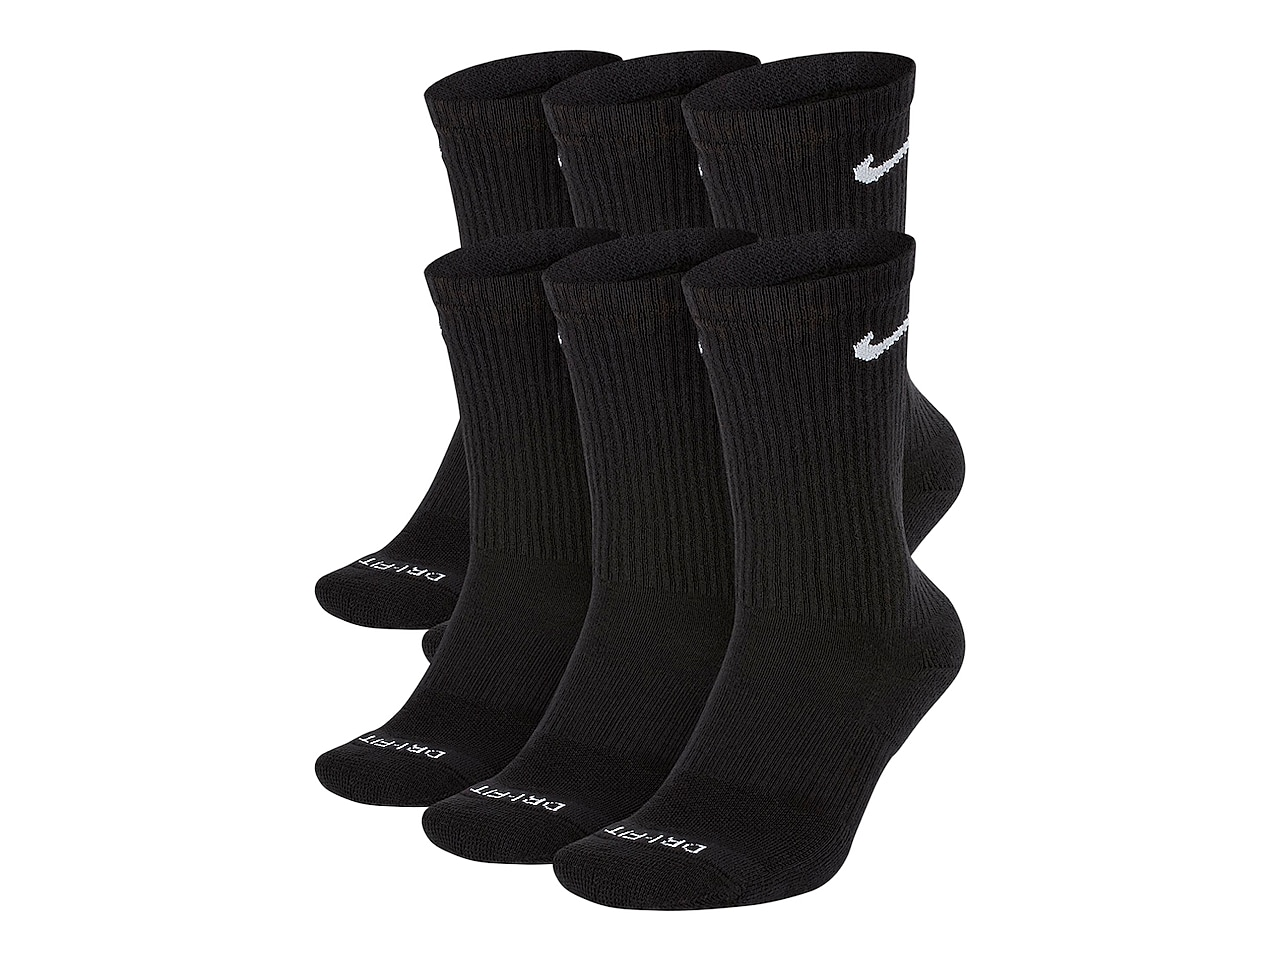 Cotton Cushioned Men's Crew Socks - 6 Pack